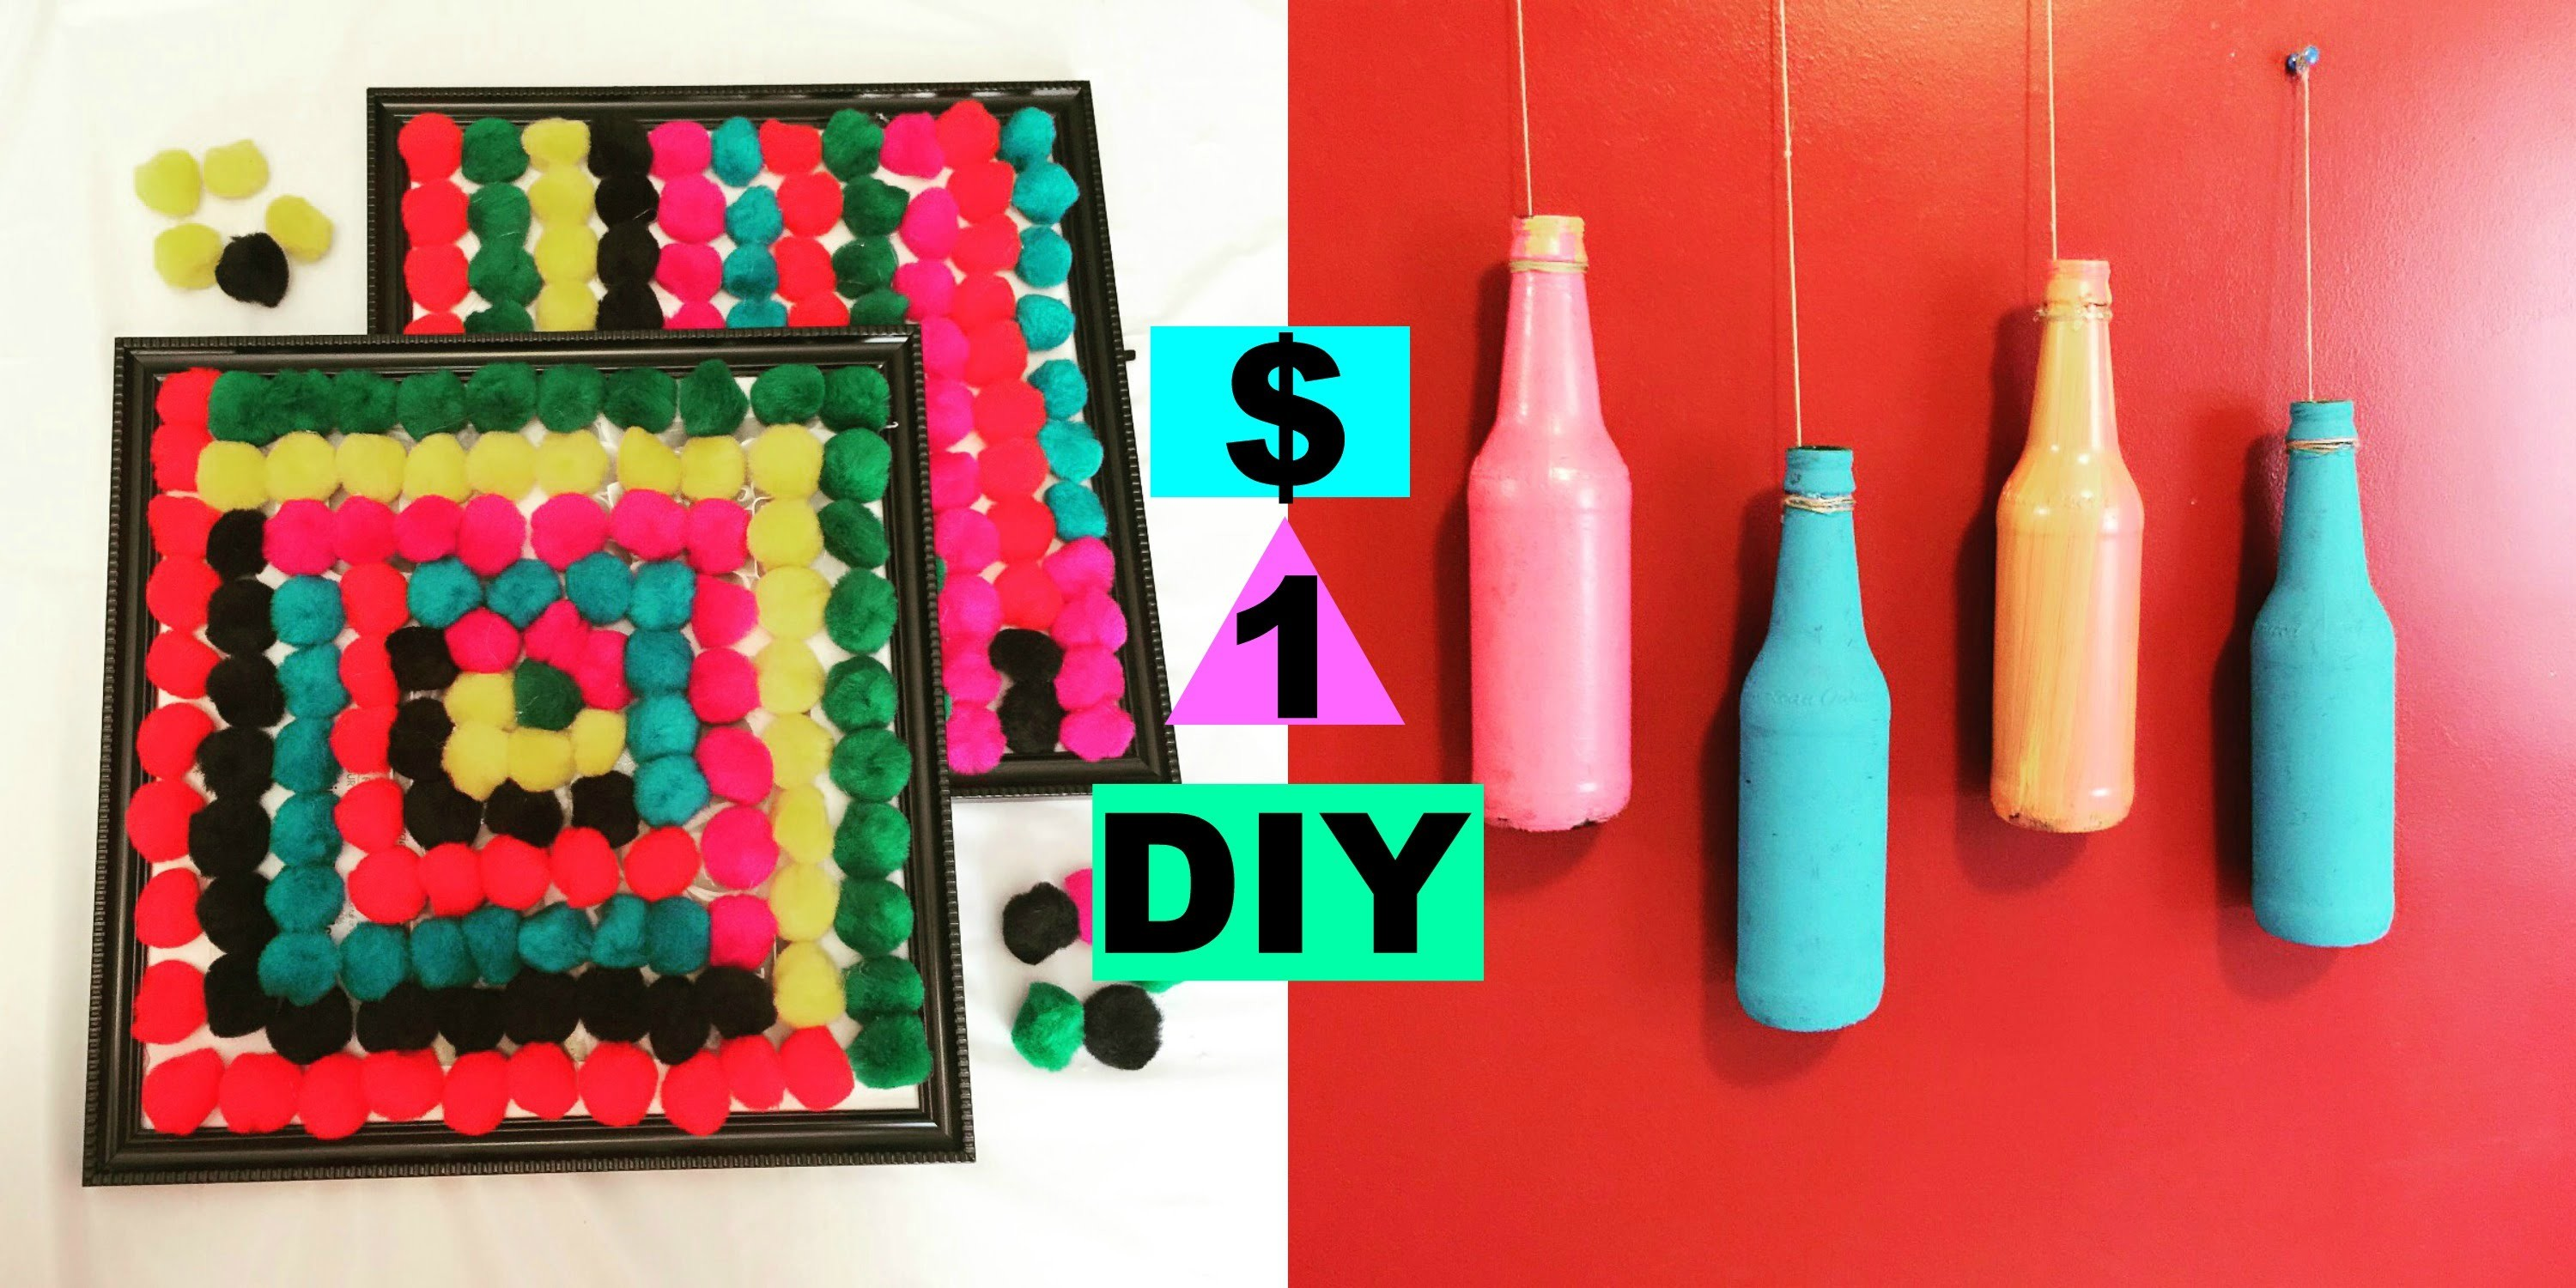 diy stores Diy crafts - easy diy crafts for kids - we have a great selection of diy crafts to keep you and your children busy do-it-yourself ceramic, wood, foam and paper crafts for kids great selection of easy craft projects for kids.